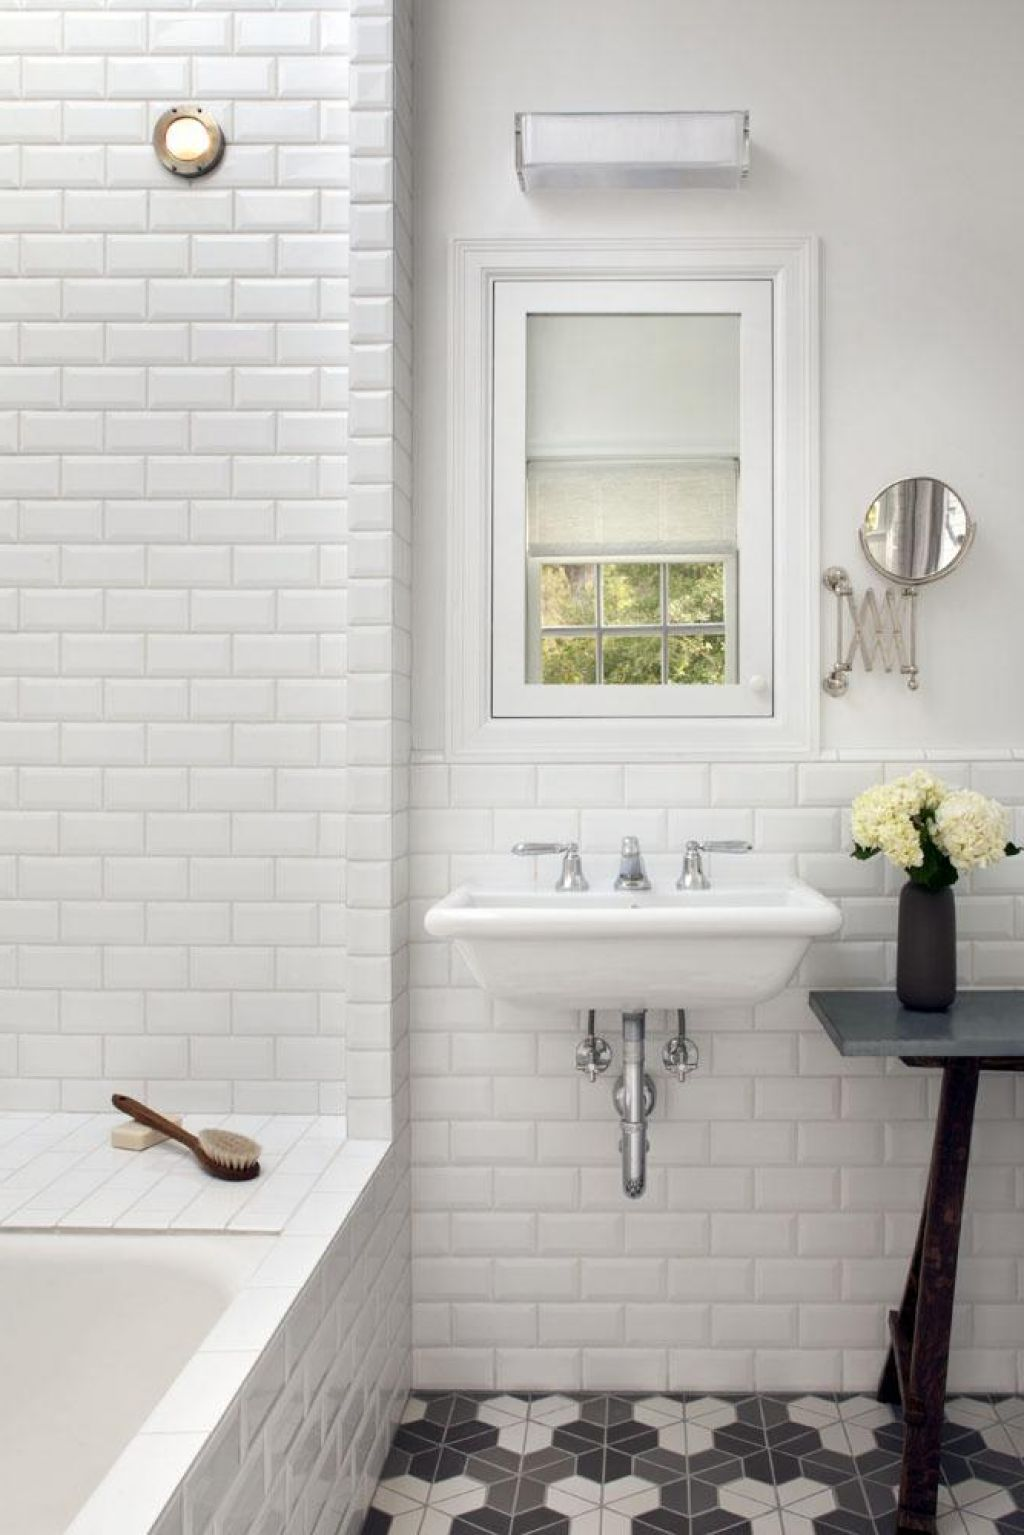 Subway tile bathroom ideas floor city wide kitchen and bath nice tile bathroom backsplash in make unique bathroom with subway tile bathroom backsplash with simple bathtub and bath vanity doublecrazyfo Images